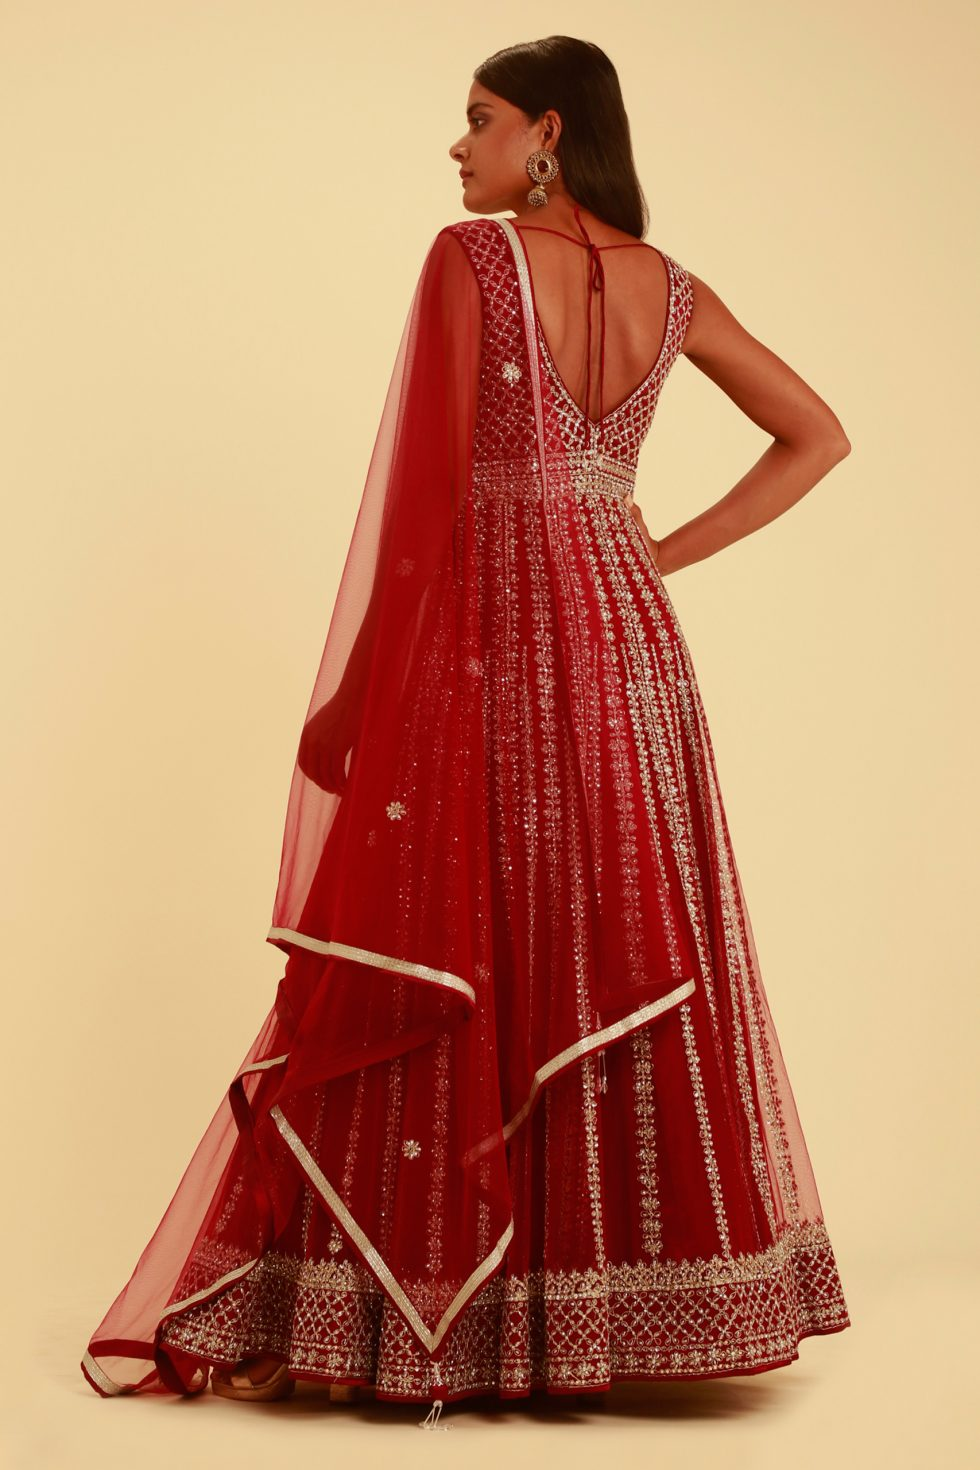 Magenta red anarkali gown set with matching dupatta and intricate silver details